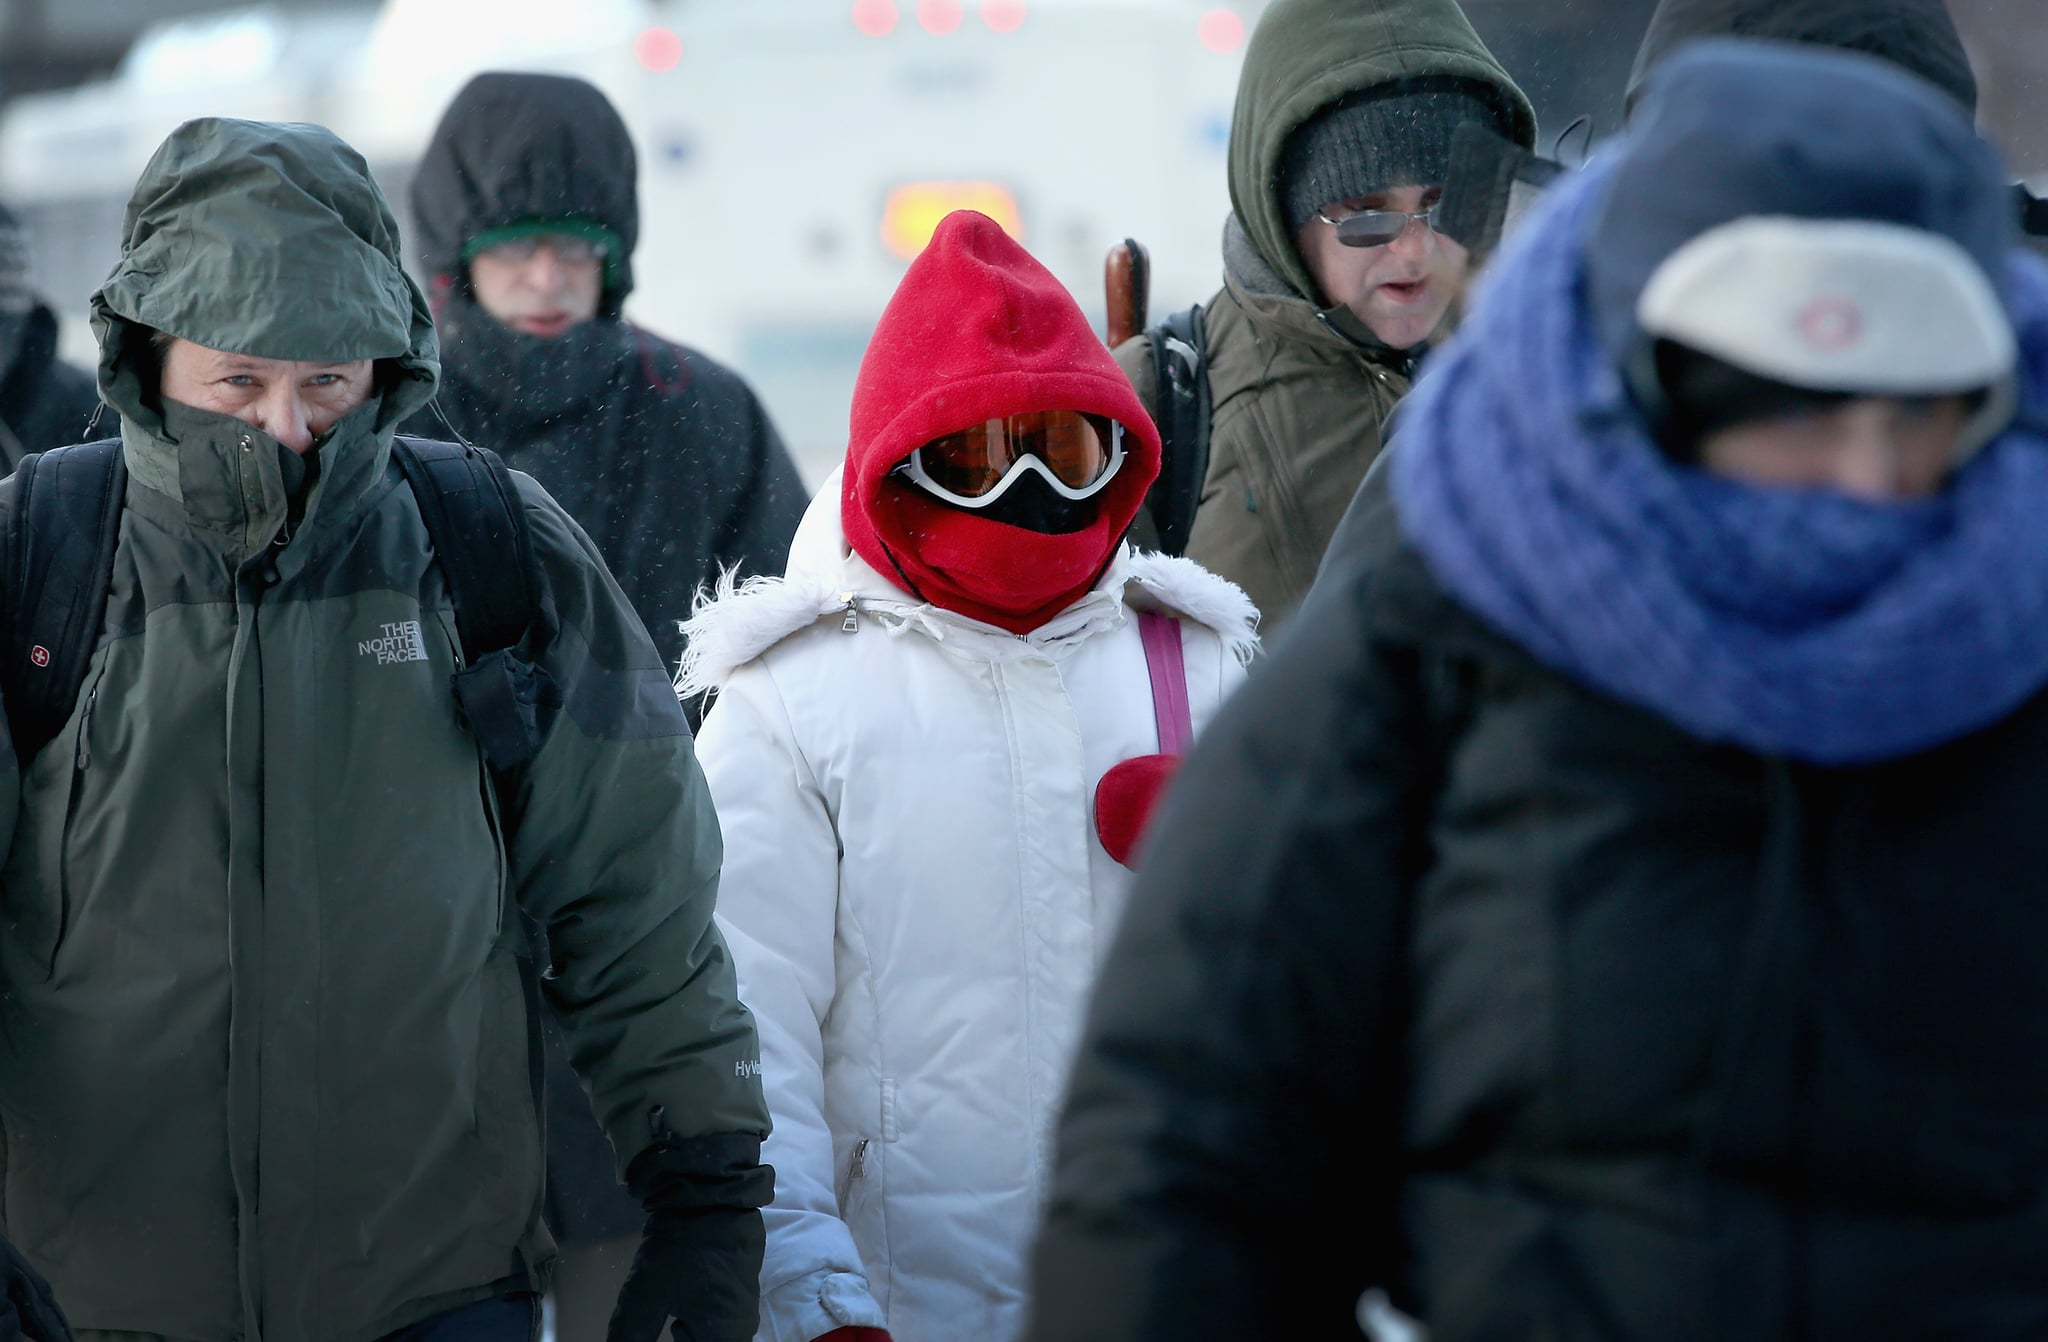 One woman wore a pair of ski goggles to brave the chilly temperatures.